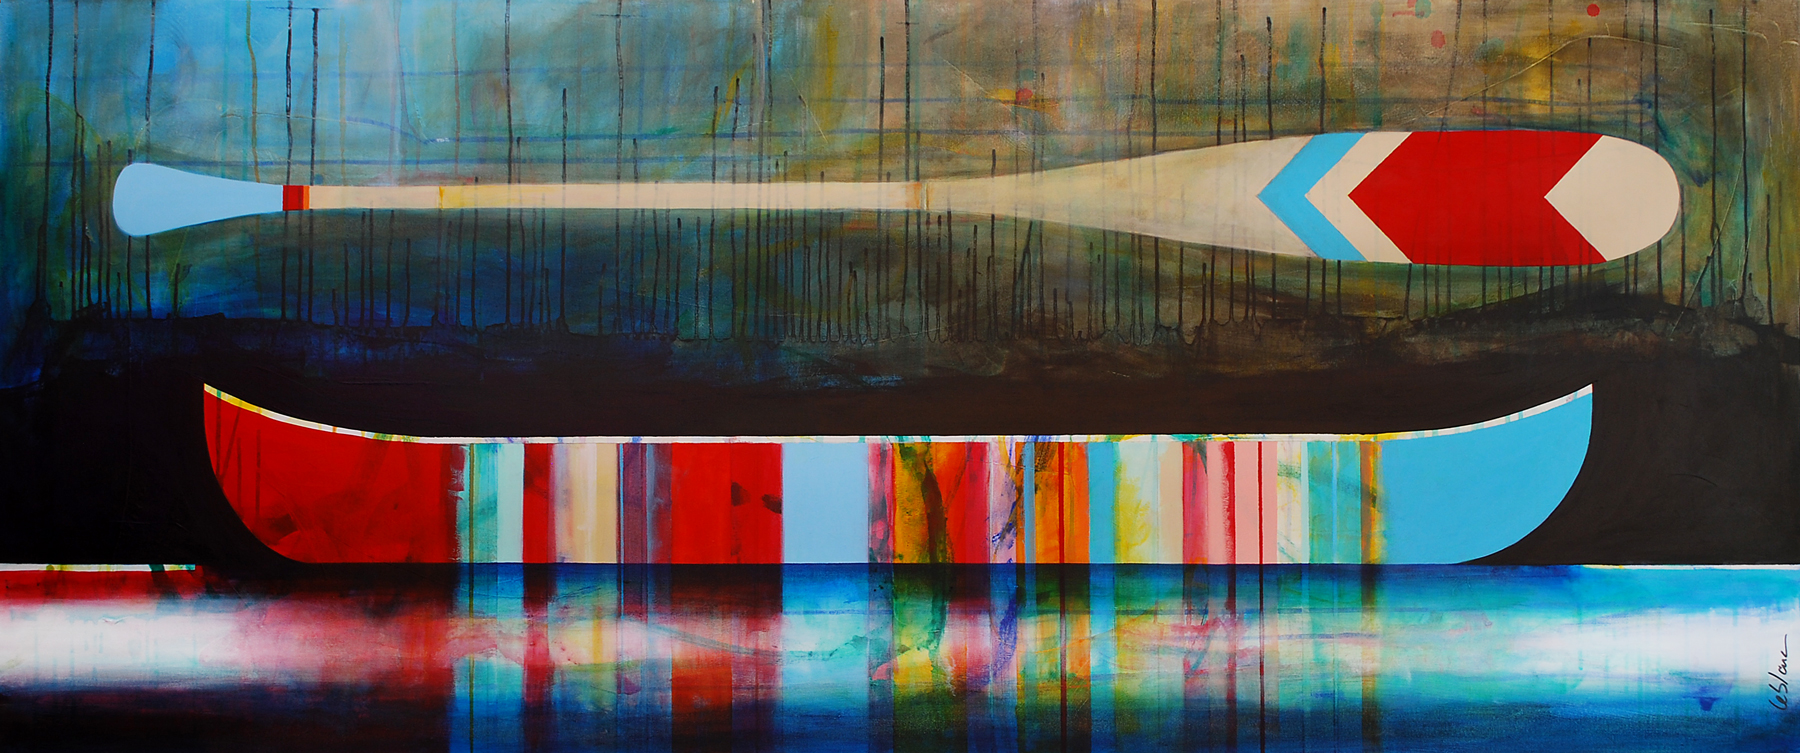 Il n'y a pas si longtemps, mixed media canoe painting by Sylvain Leblanc | Effusion Art Gallery + Cast Glass Studio, Invermere BC